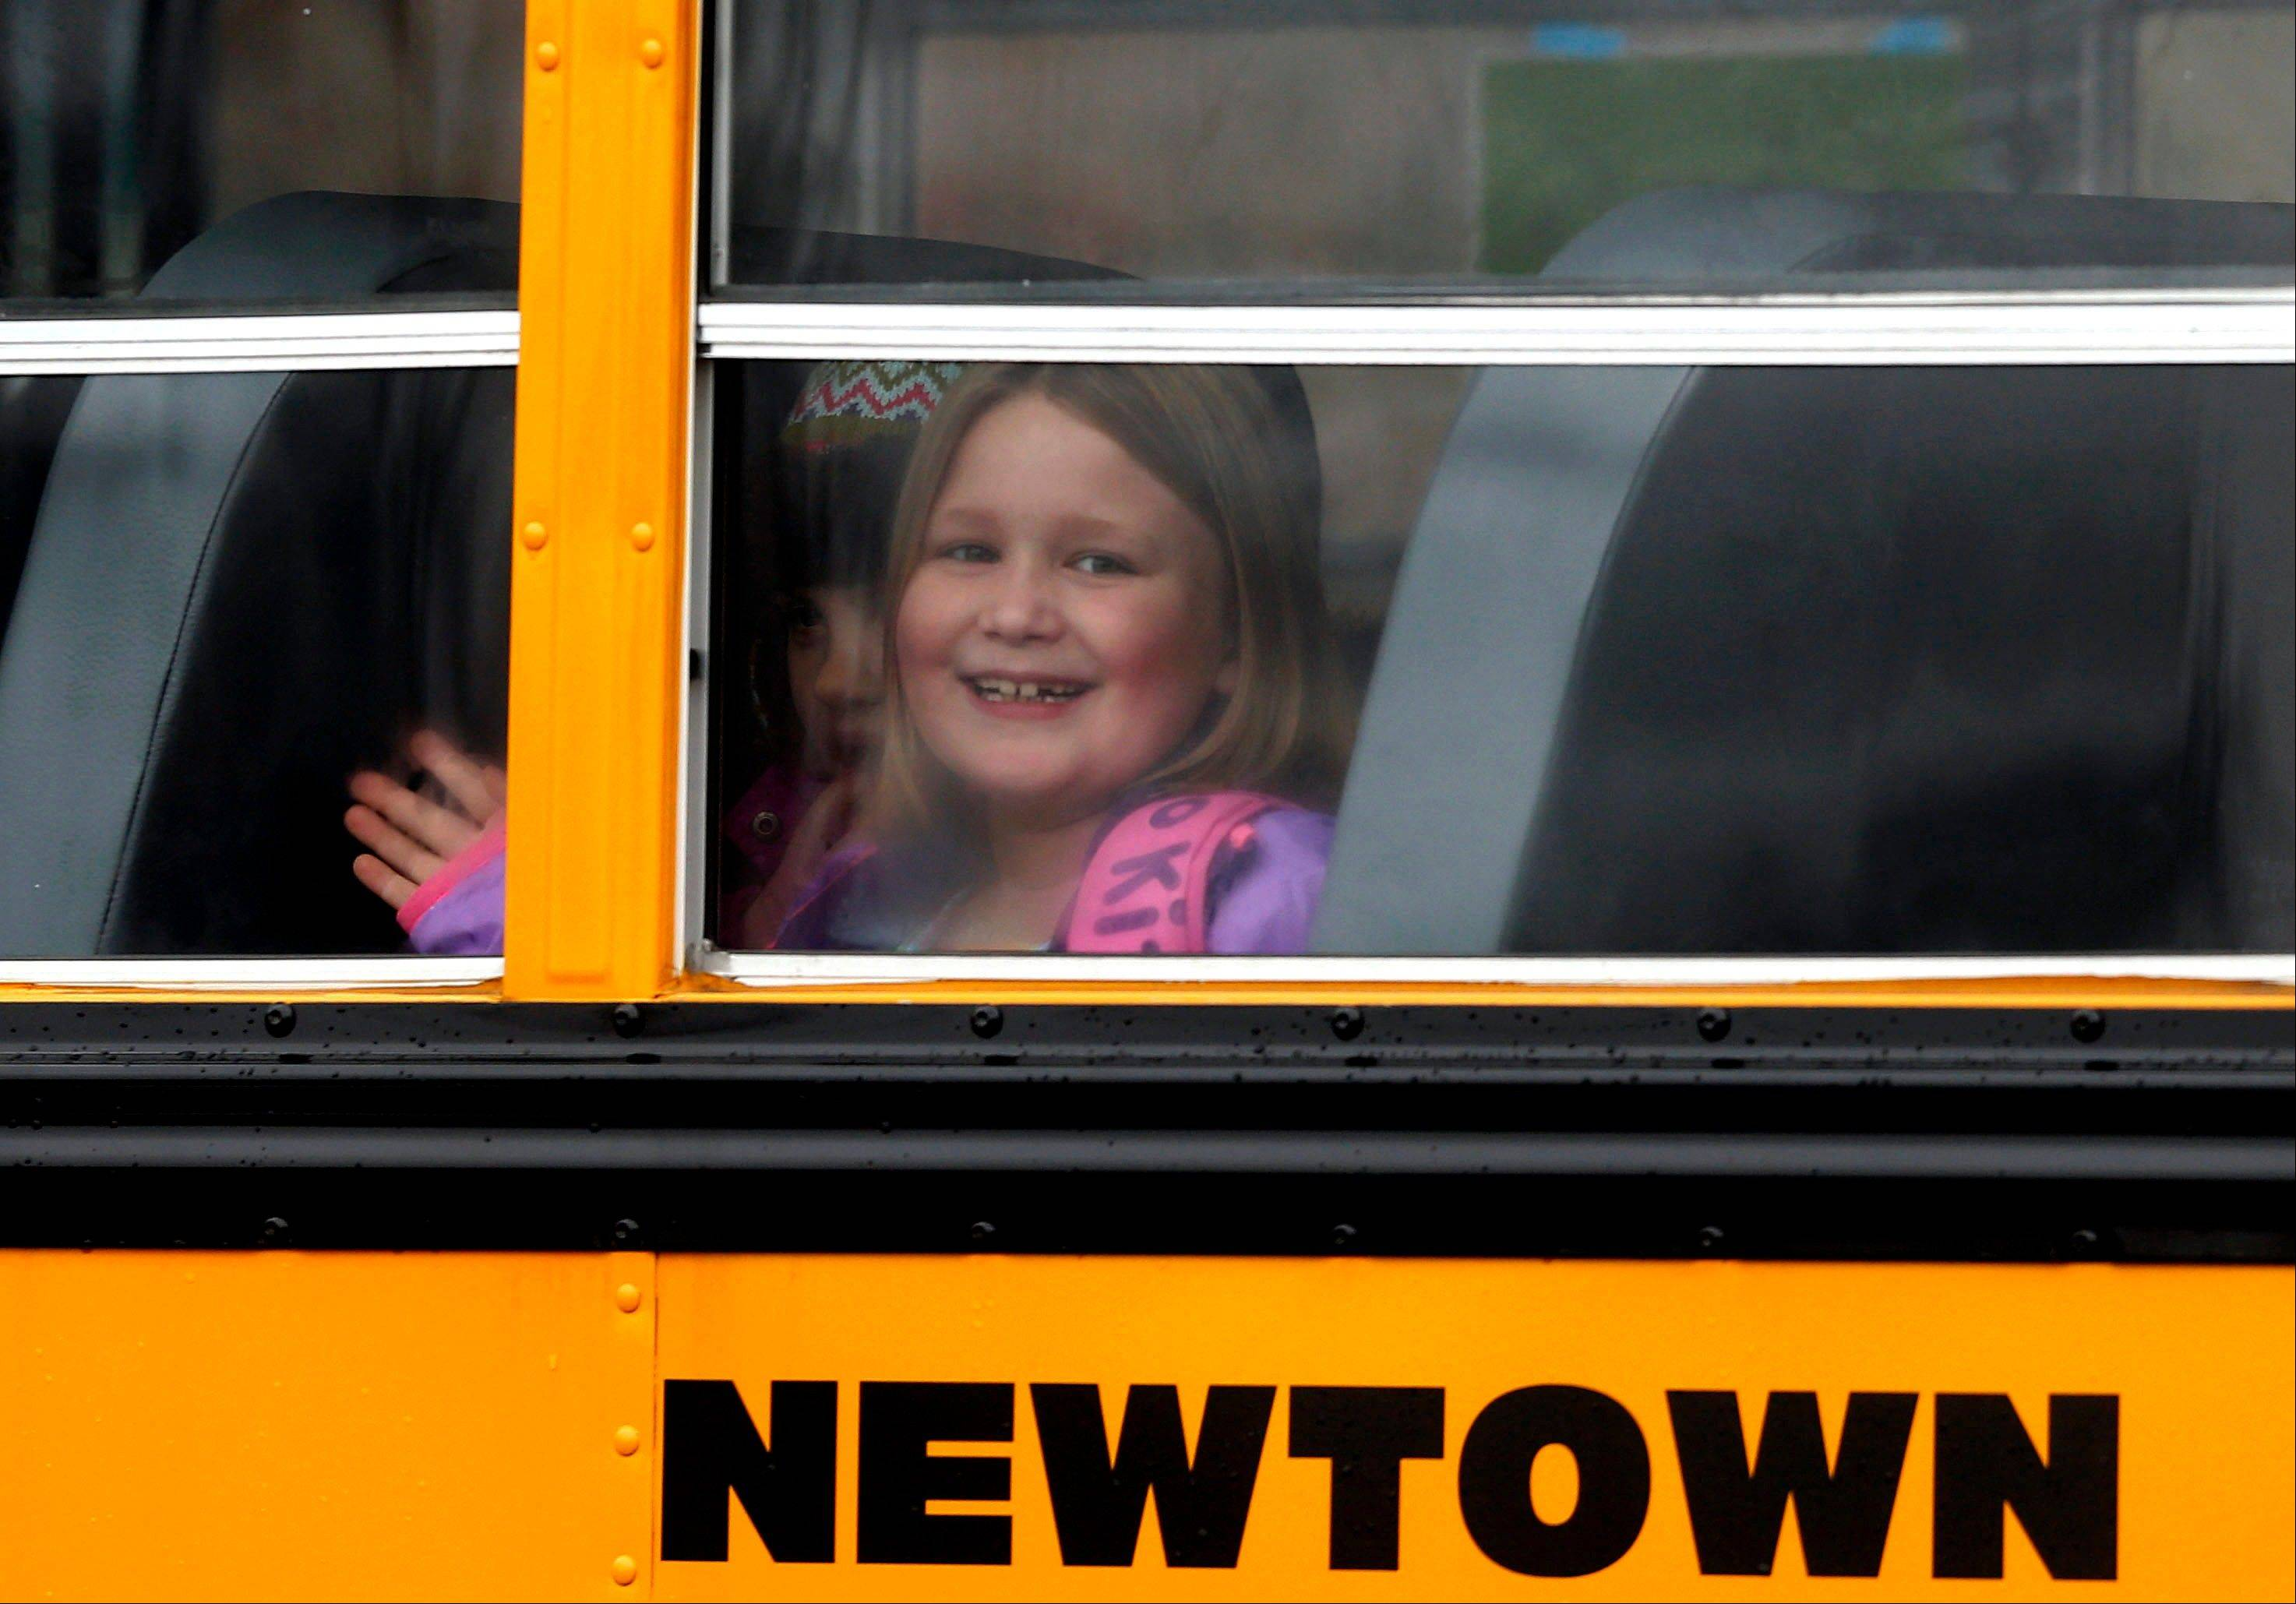 A young girl waves as her school bus pulls into Hawley School, Tuesday, Dec. 18, 2012, in Newtown, Conn. Classes resume Tuesday for Newtown schools except those at Sandy Hook. Buses ferrying students to schools were festooned with large green and white ribbons on the front grills, the colors of Sandy Hook.